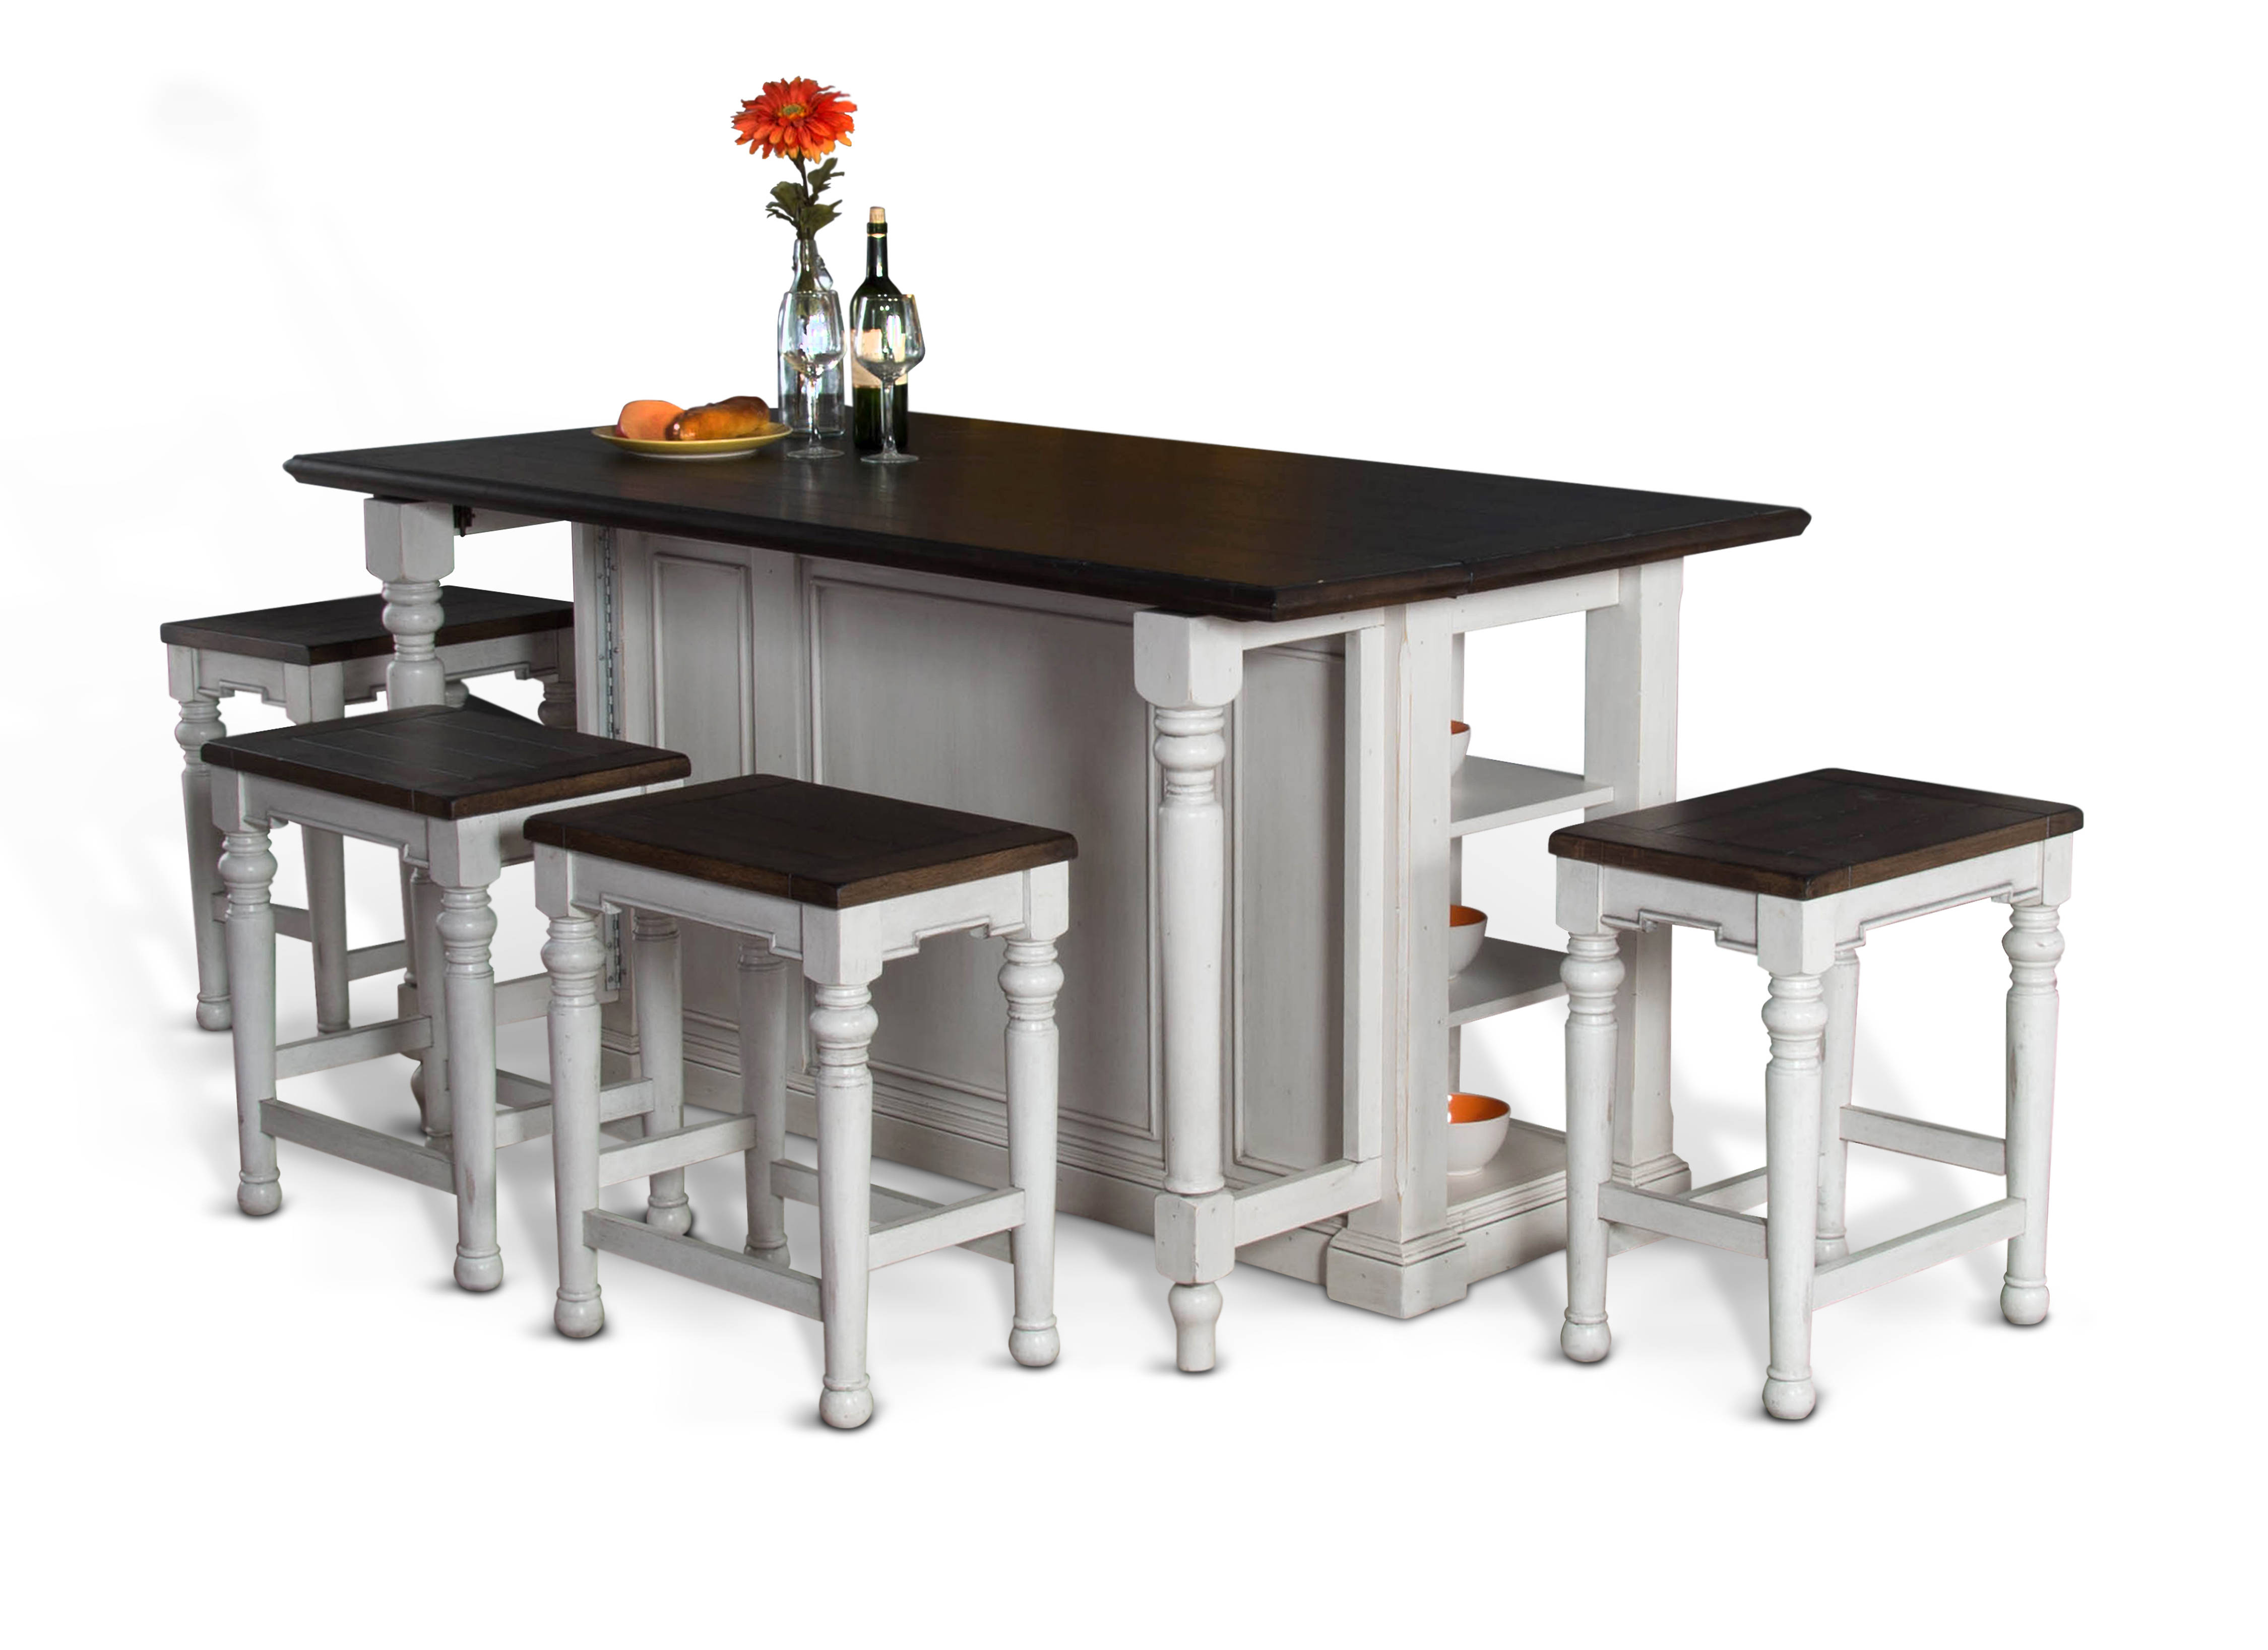 Sunny designs bourbon county french country 5pc bar set for Hgg 5pc drop leaf kitchen dining table set